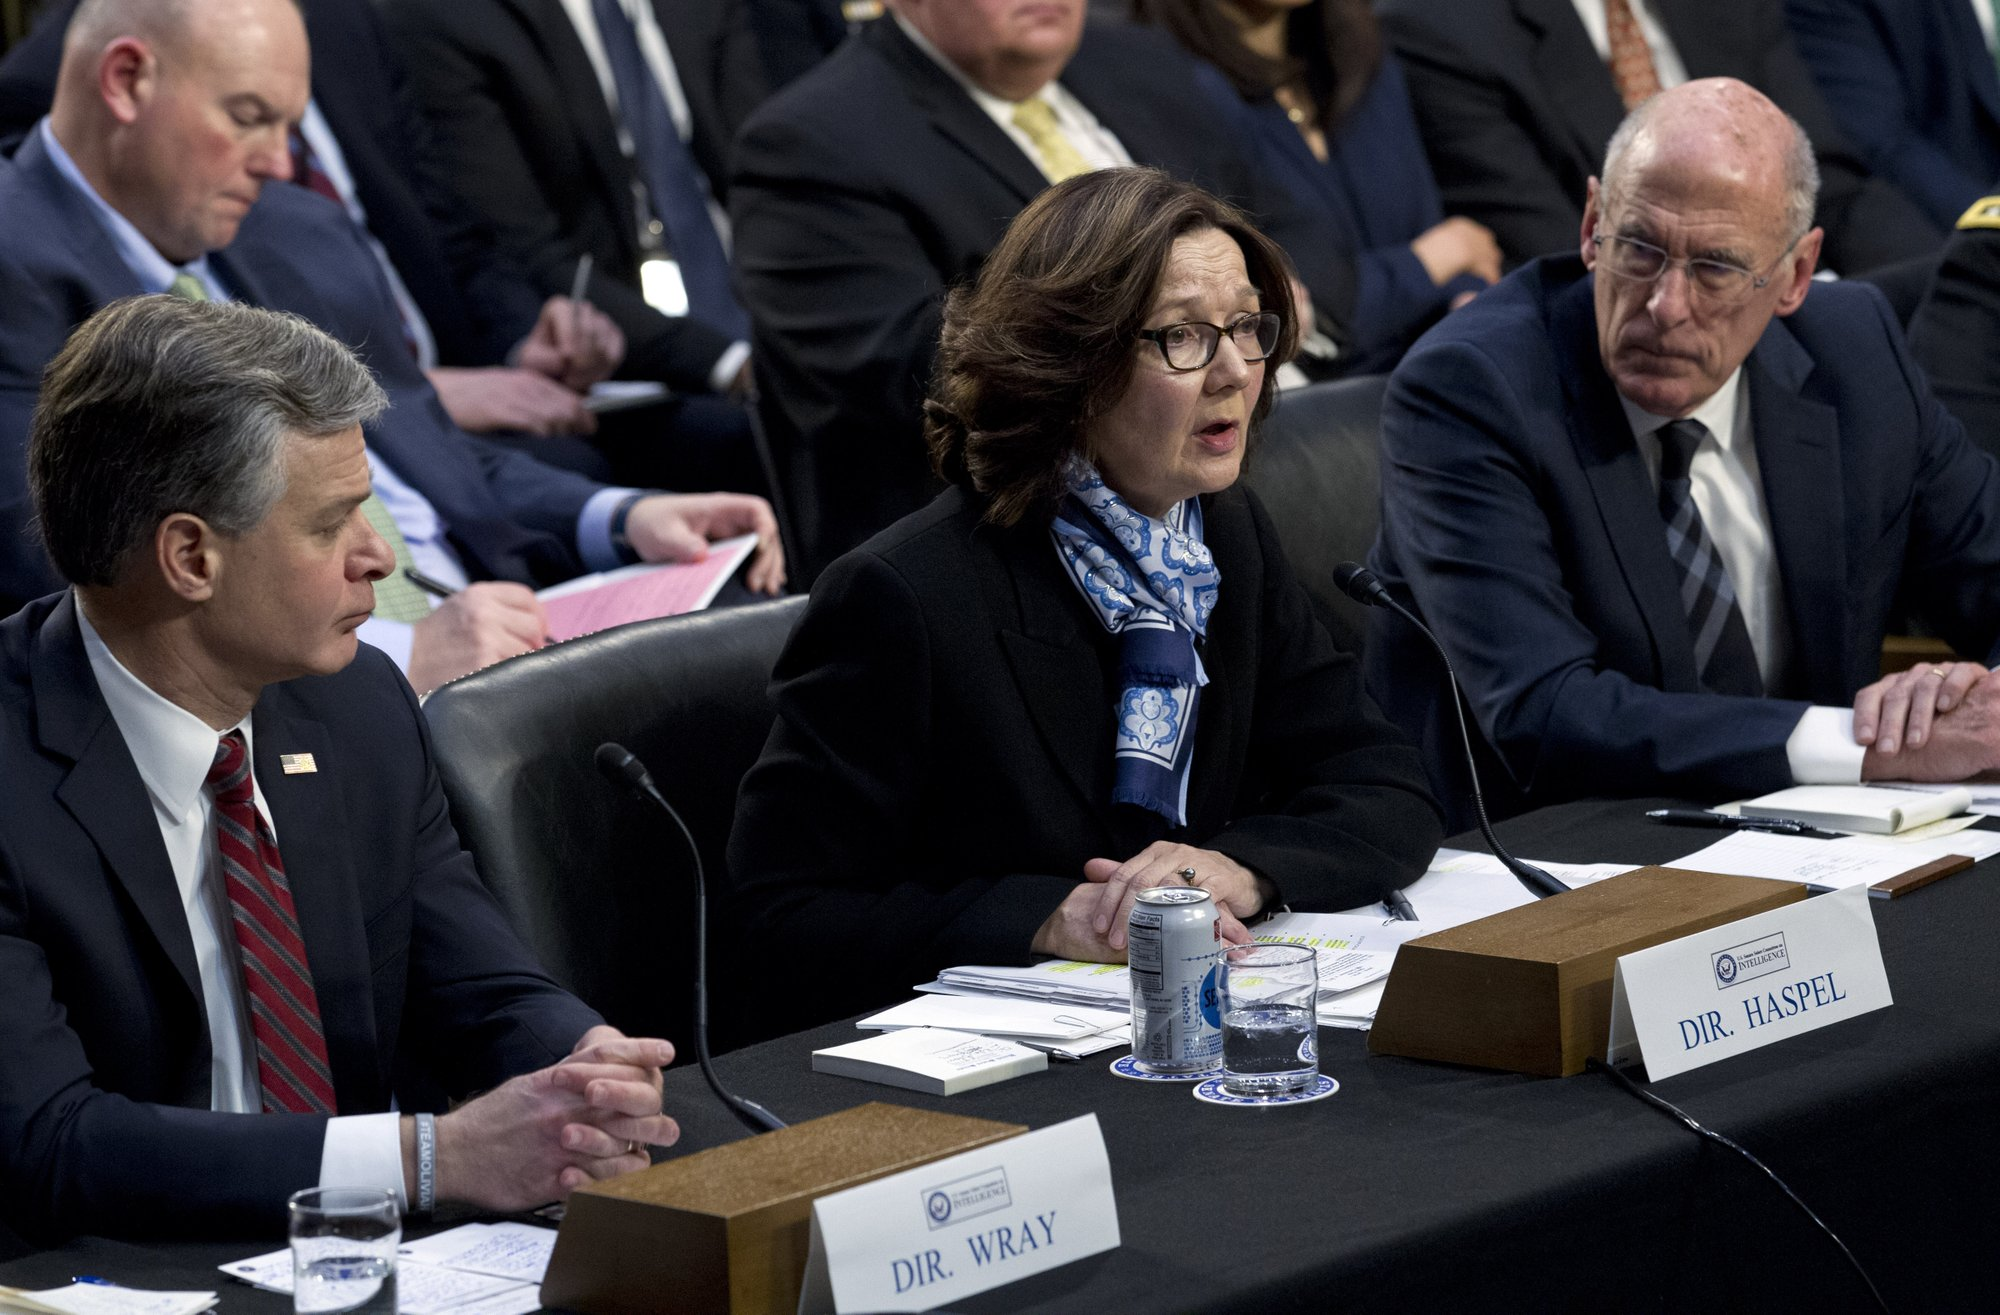 CIA Director Gina Haspel accompanied by FBI Director Christopher Wray and Director of National Intelligence Daniel Coats testifies before the Senate Intelligence Committee on Capitol Hill in Washington on Tuesday, Jan. 29, 2019. Photo: AP